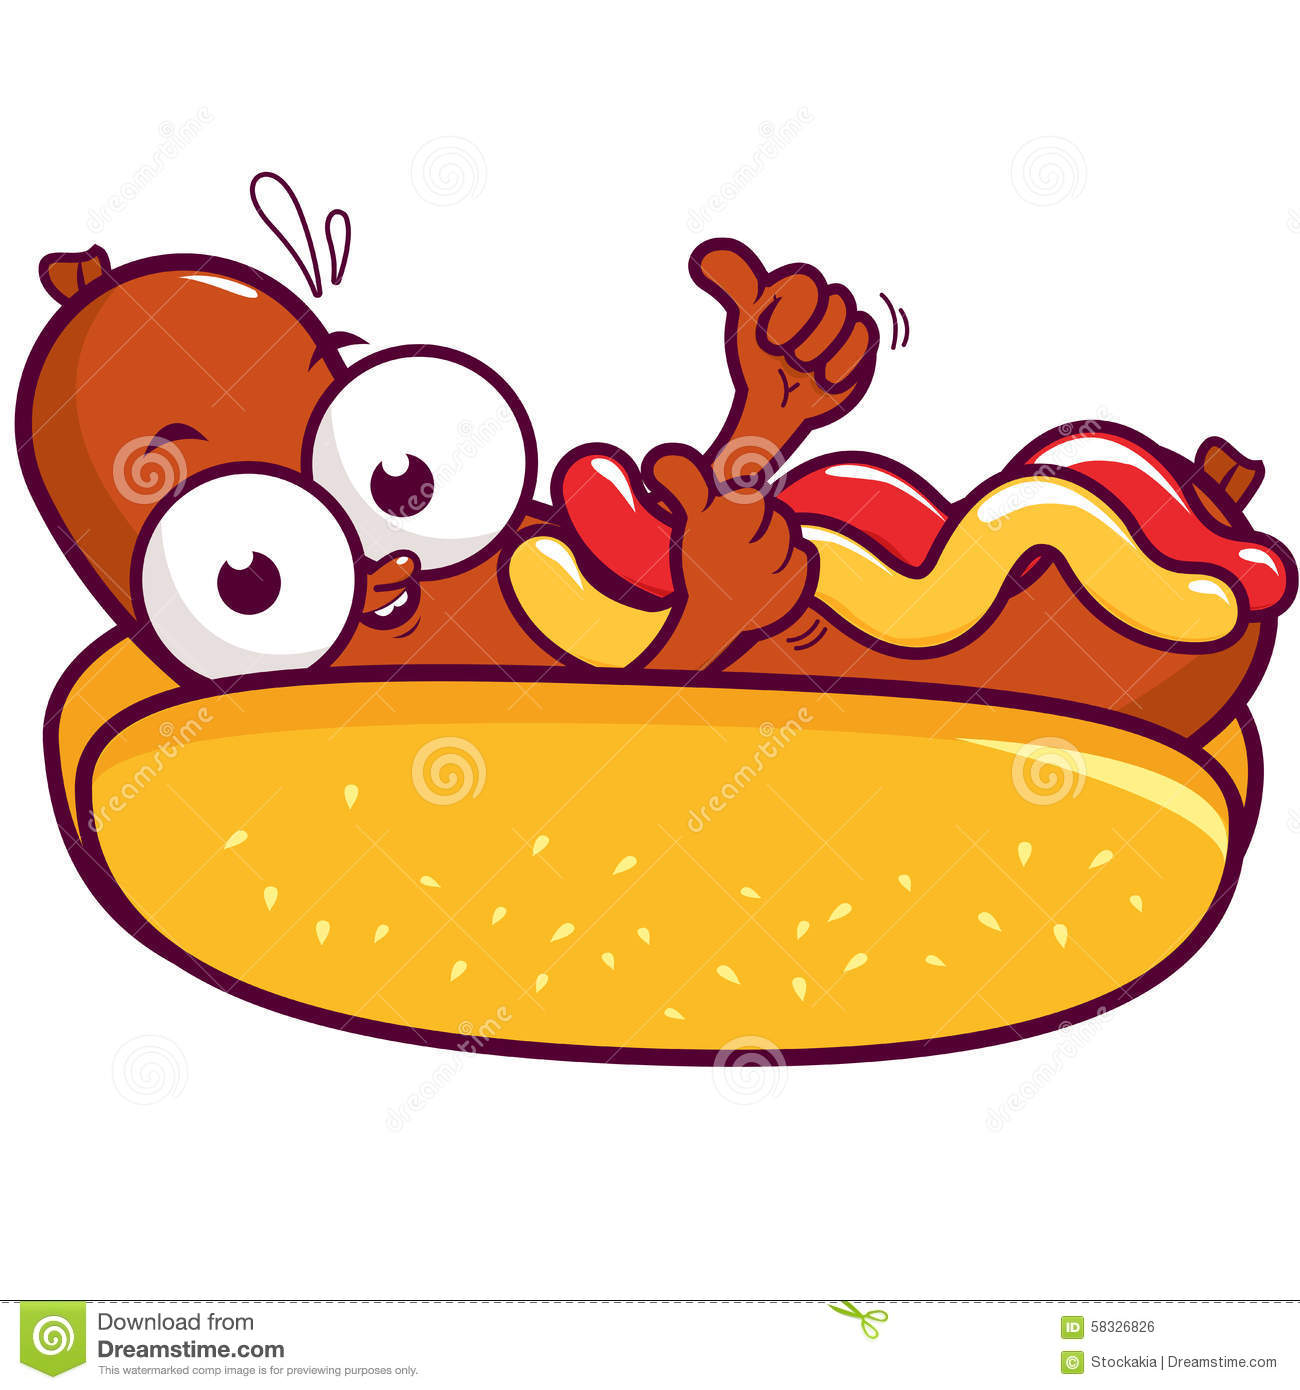 Drawings Of Chili Hot Dogs